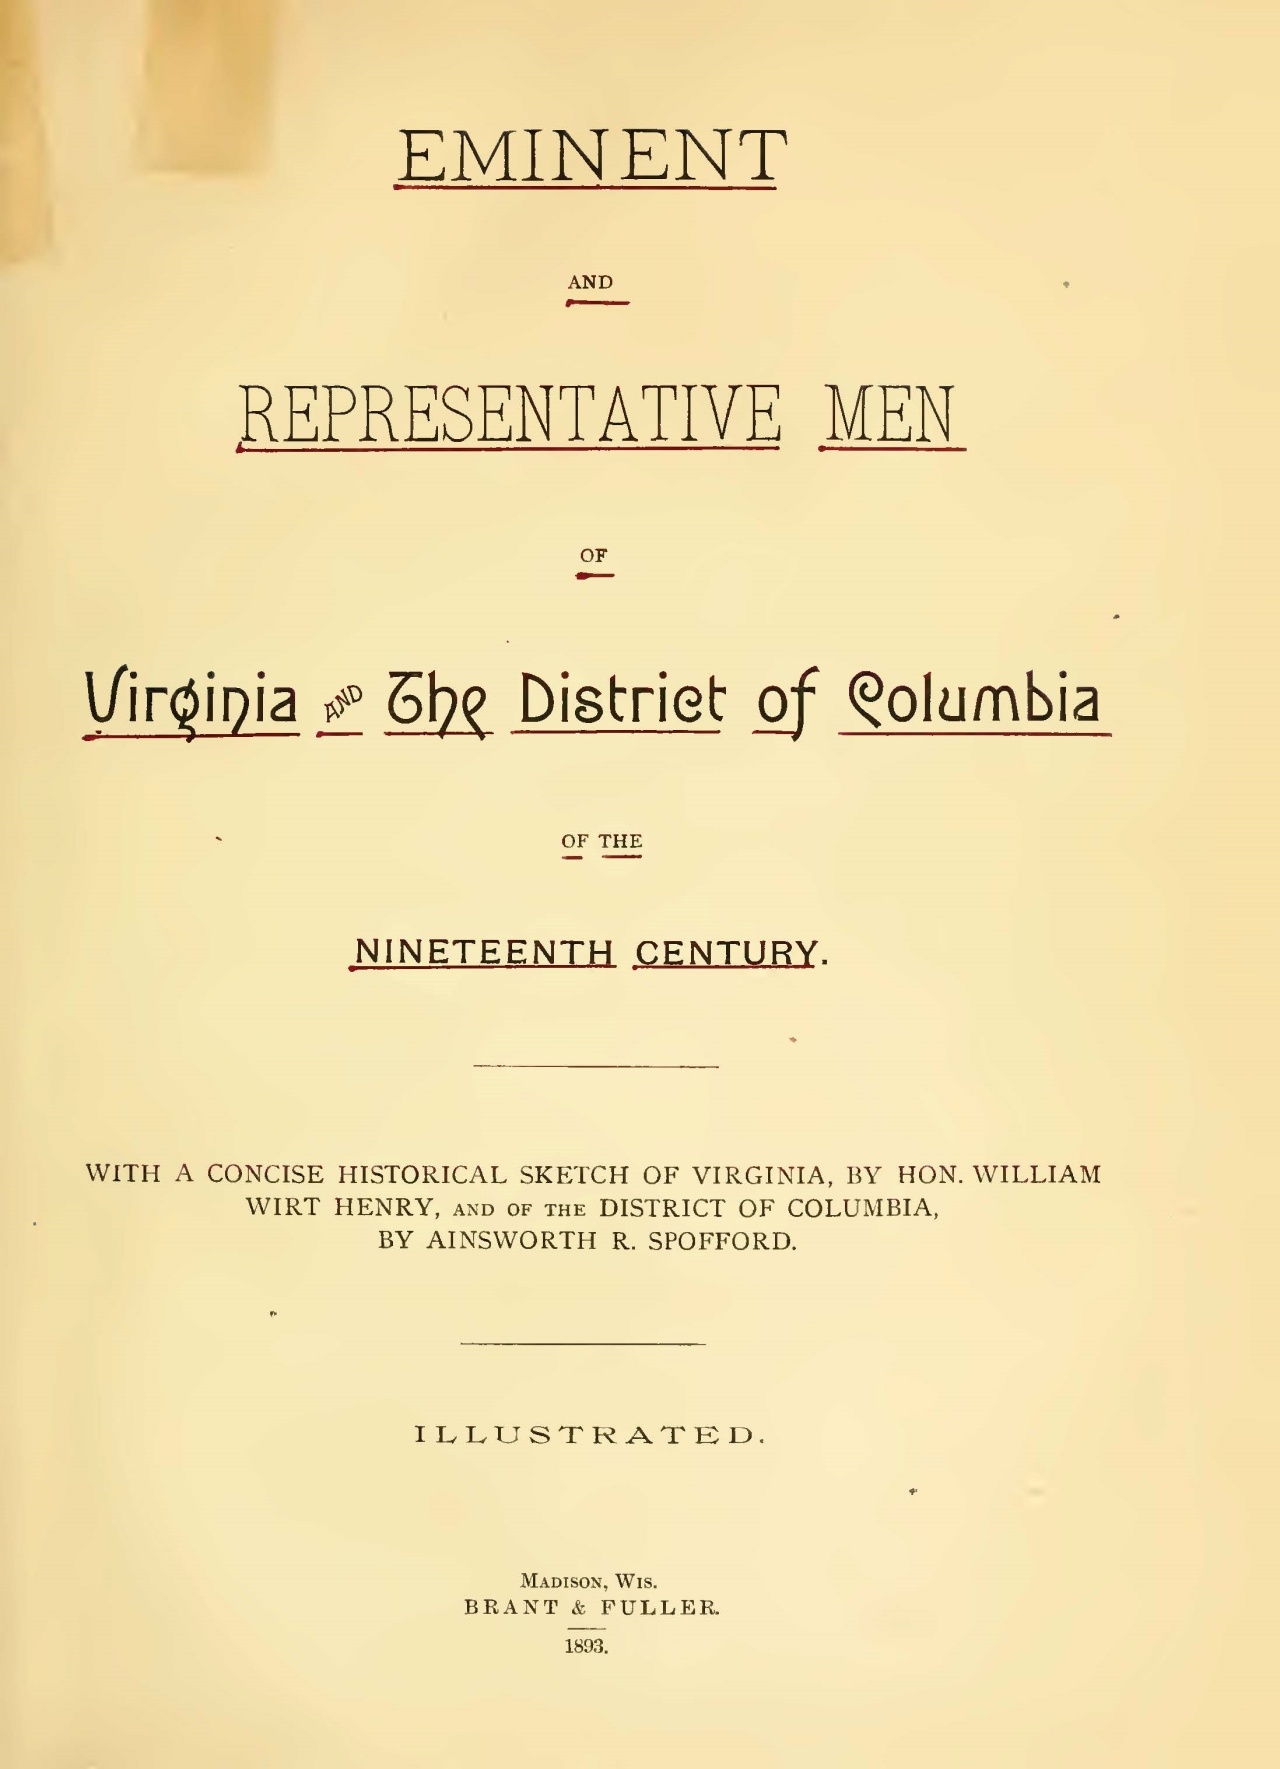 Henry, William Wirt, Eminent and Representative Men of Virginia and the District of Columbia Title Page.jpg